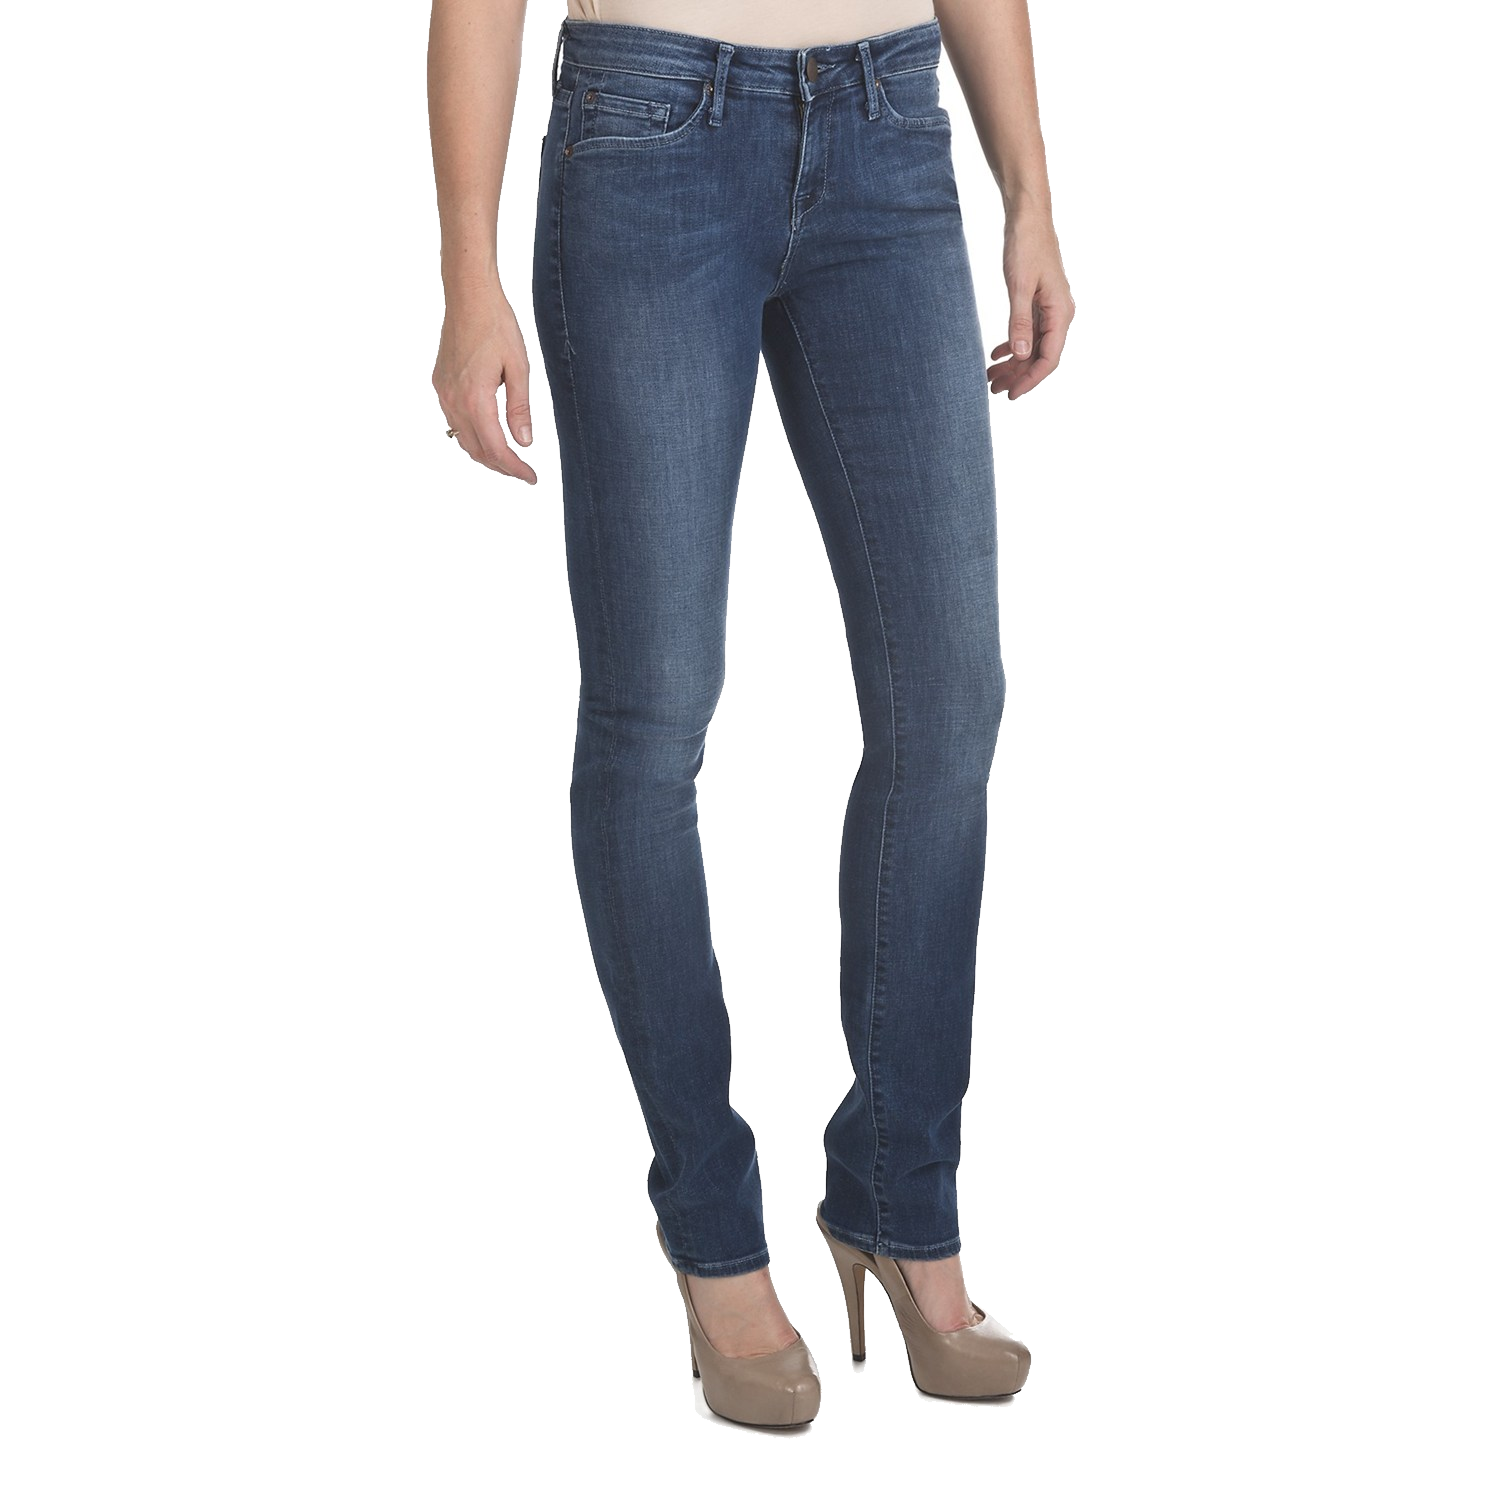 Skinny jeans png. Women image purepng free